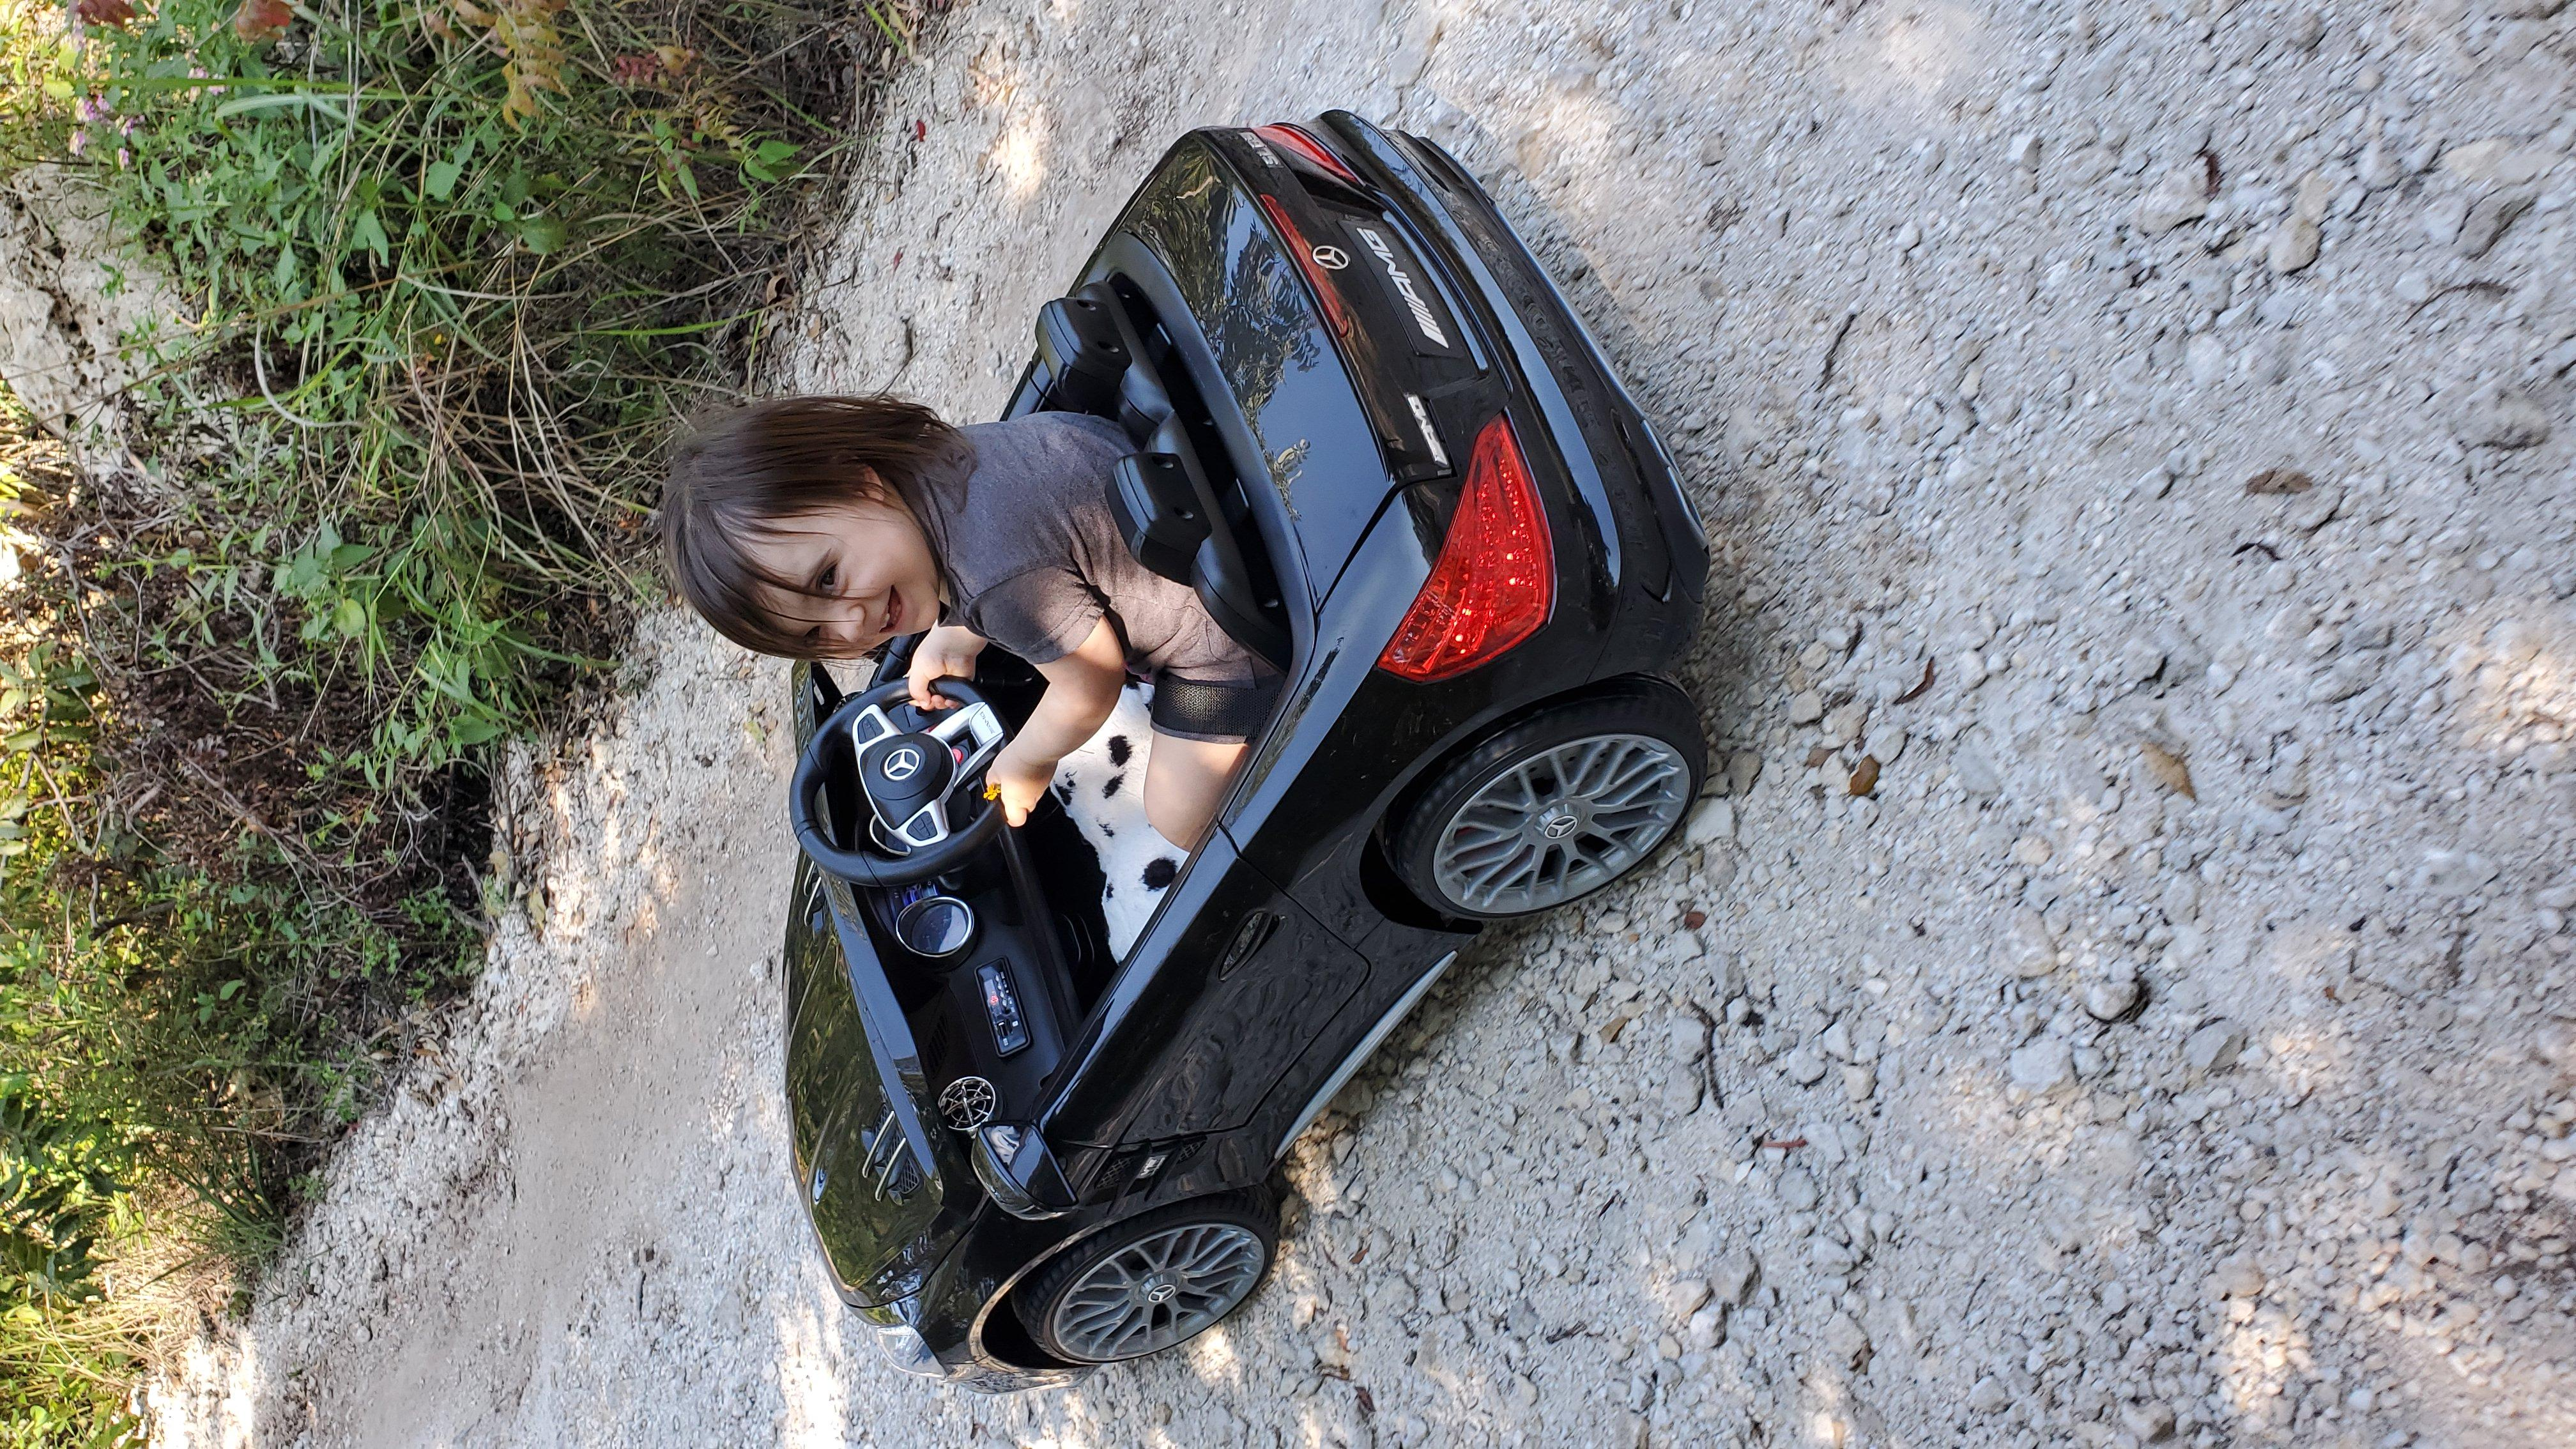 12V Mercedes Benz Licensed Kids Ride On Car with Remote Control, Black photo review